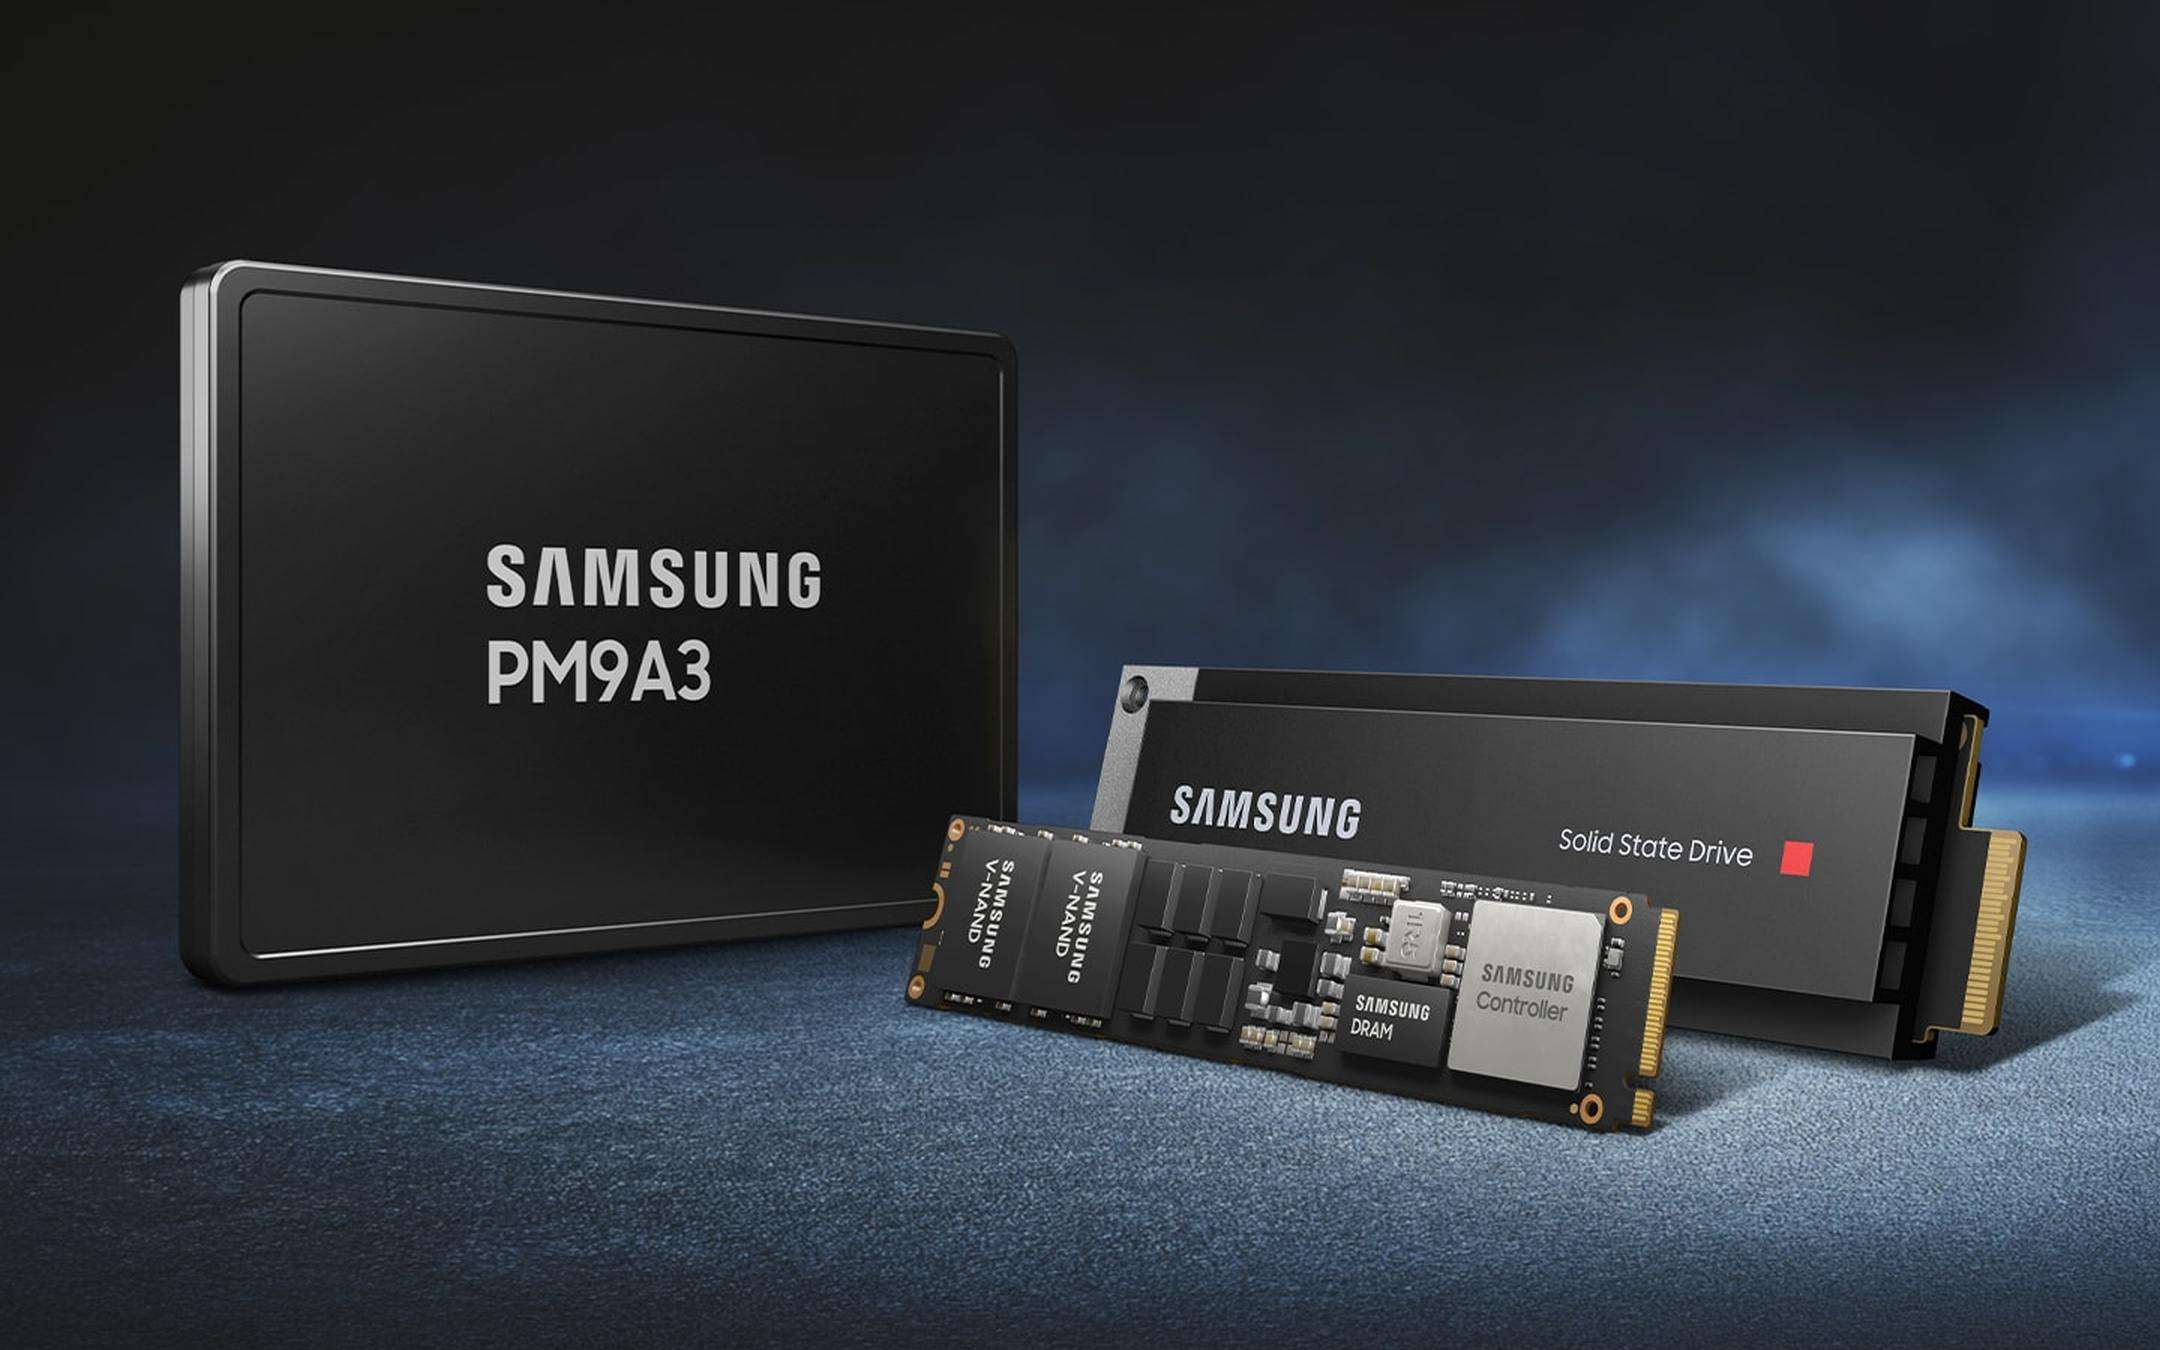 Samsung PM9A3, new SSDs for data centers